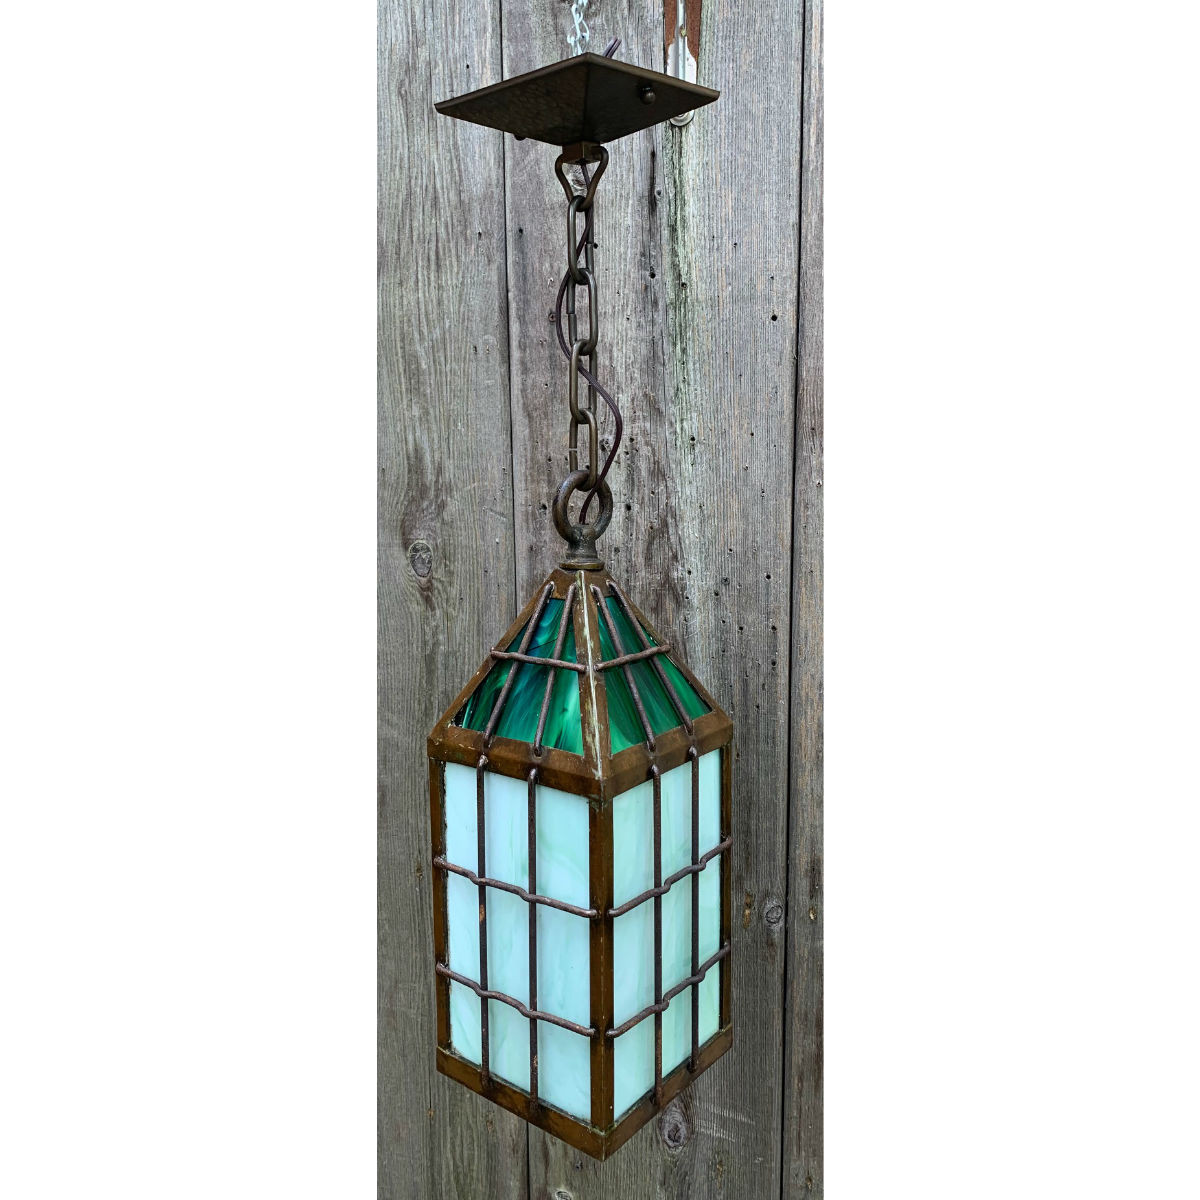 L19167 - Antique Arts & Crafts Lantern Fixture